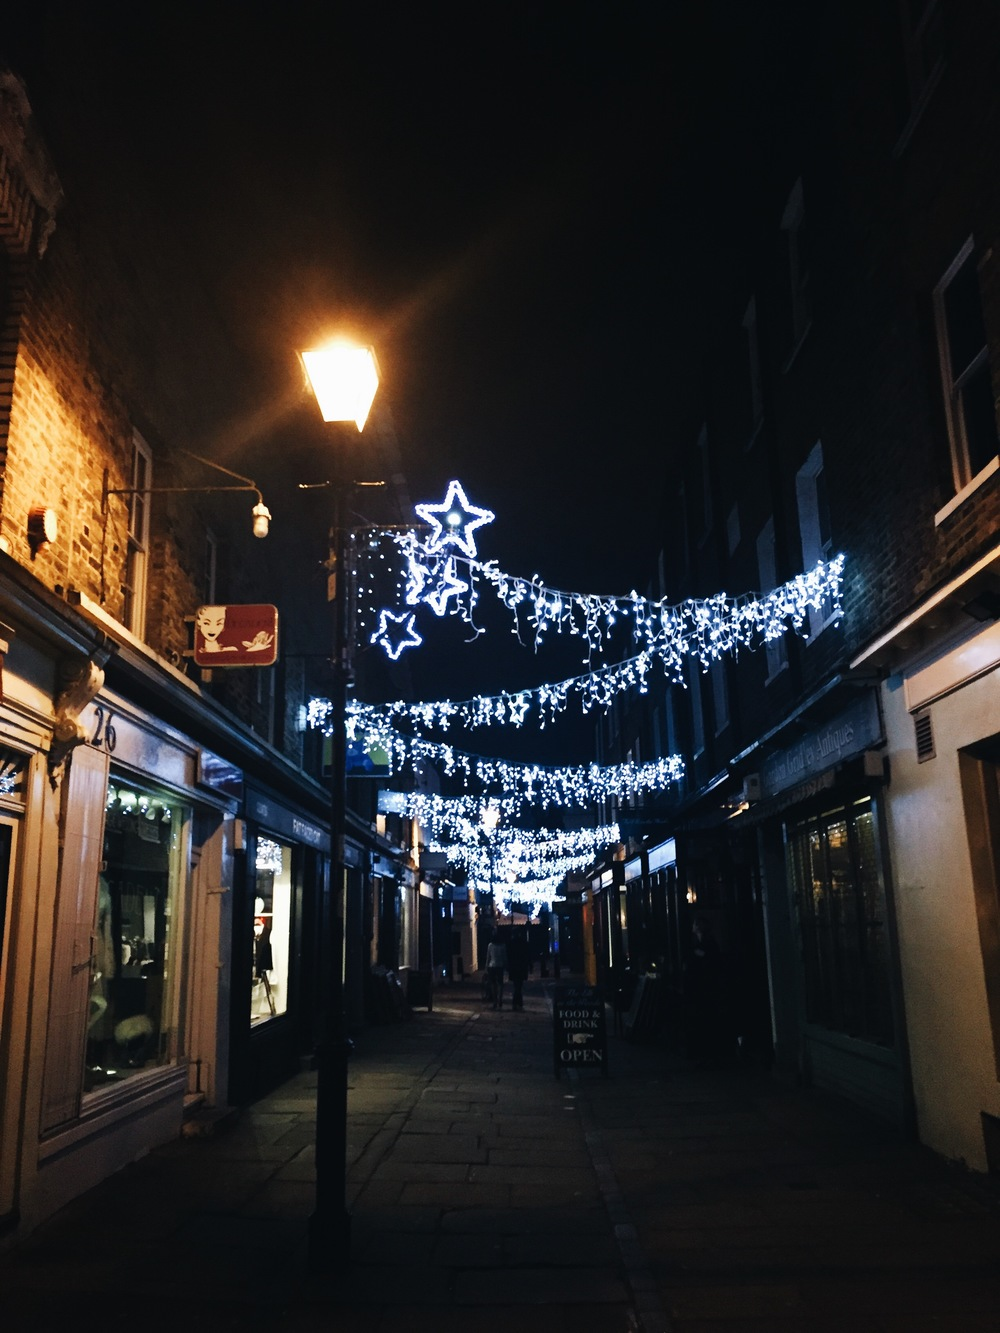 SOA_Camden-Passage-Islington_Holiday-lights.jpg